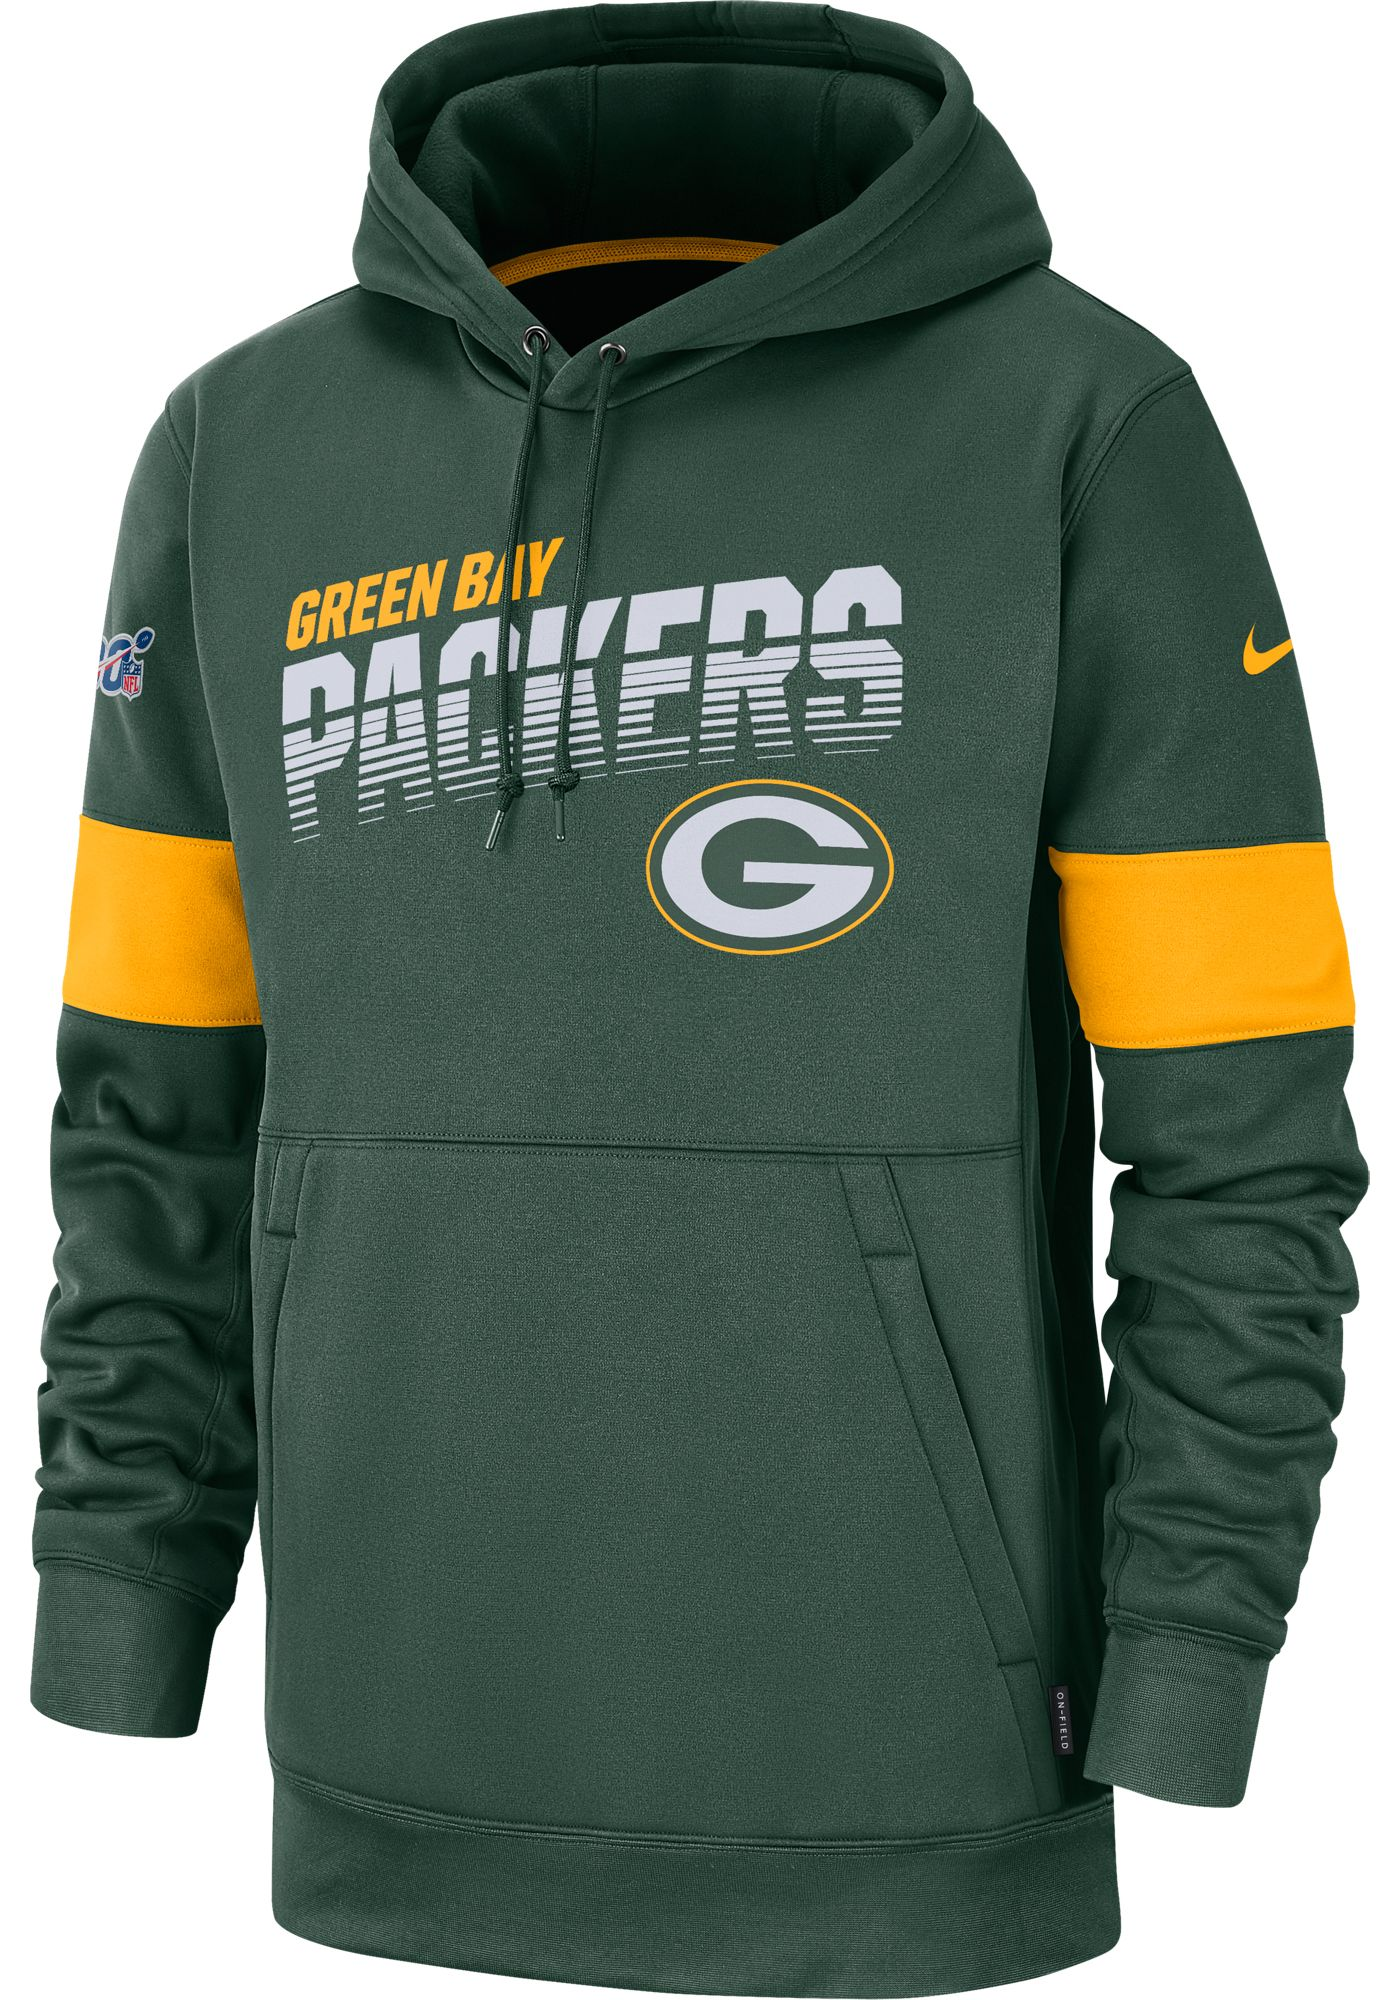 Nike Men's Green Bay Packers 100th Sideline Therma-FIT Green Pullover Hoodie